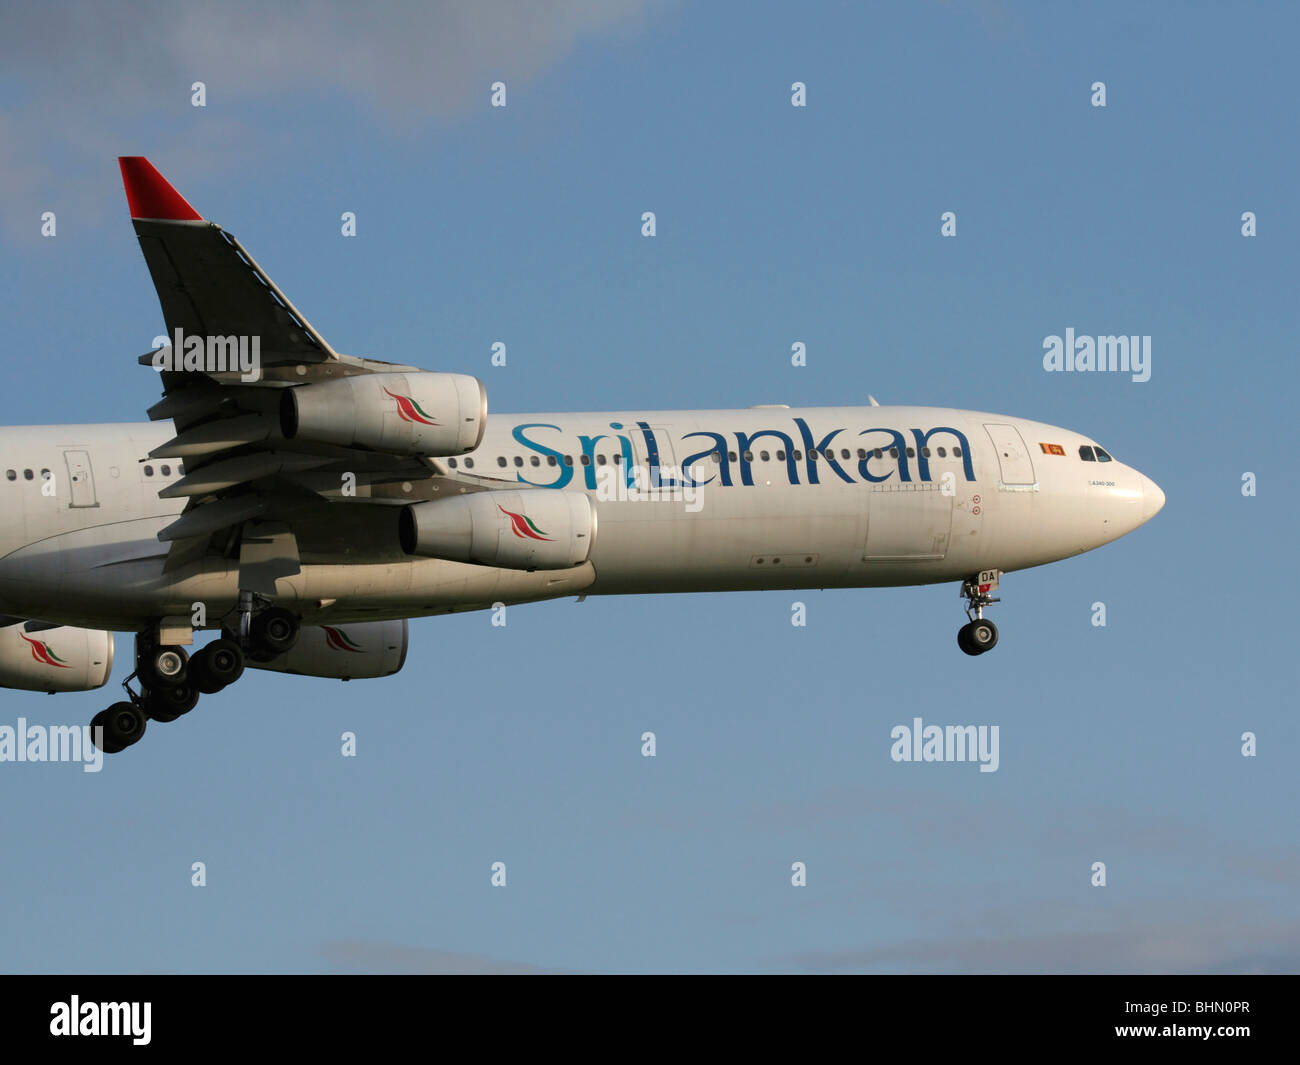 SriLankan Airlines Airbus A340-300 Stock Photo